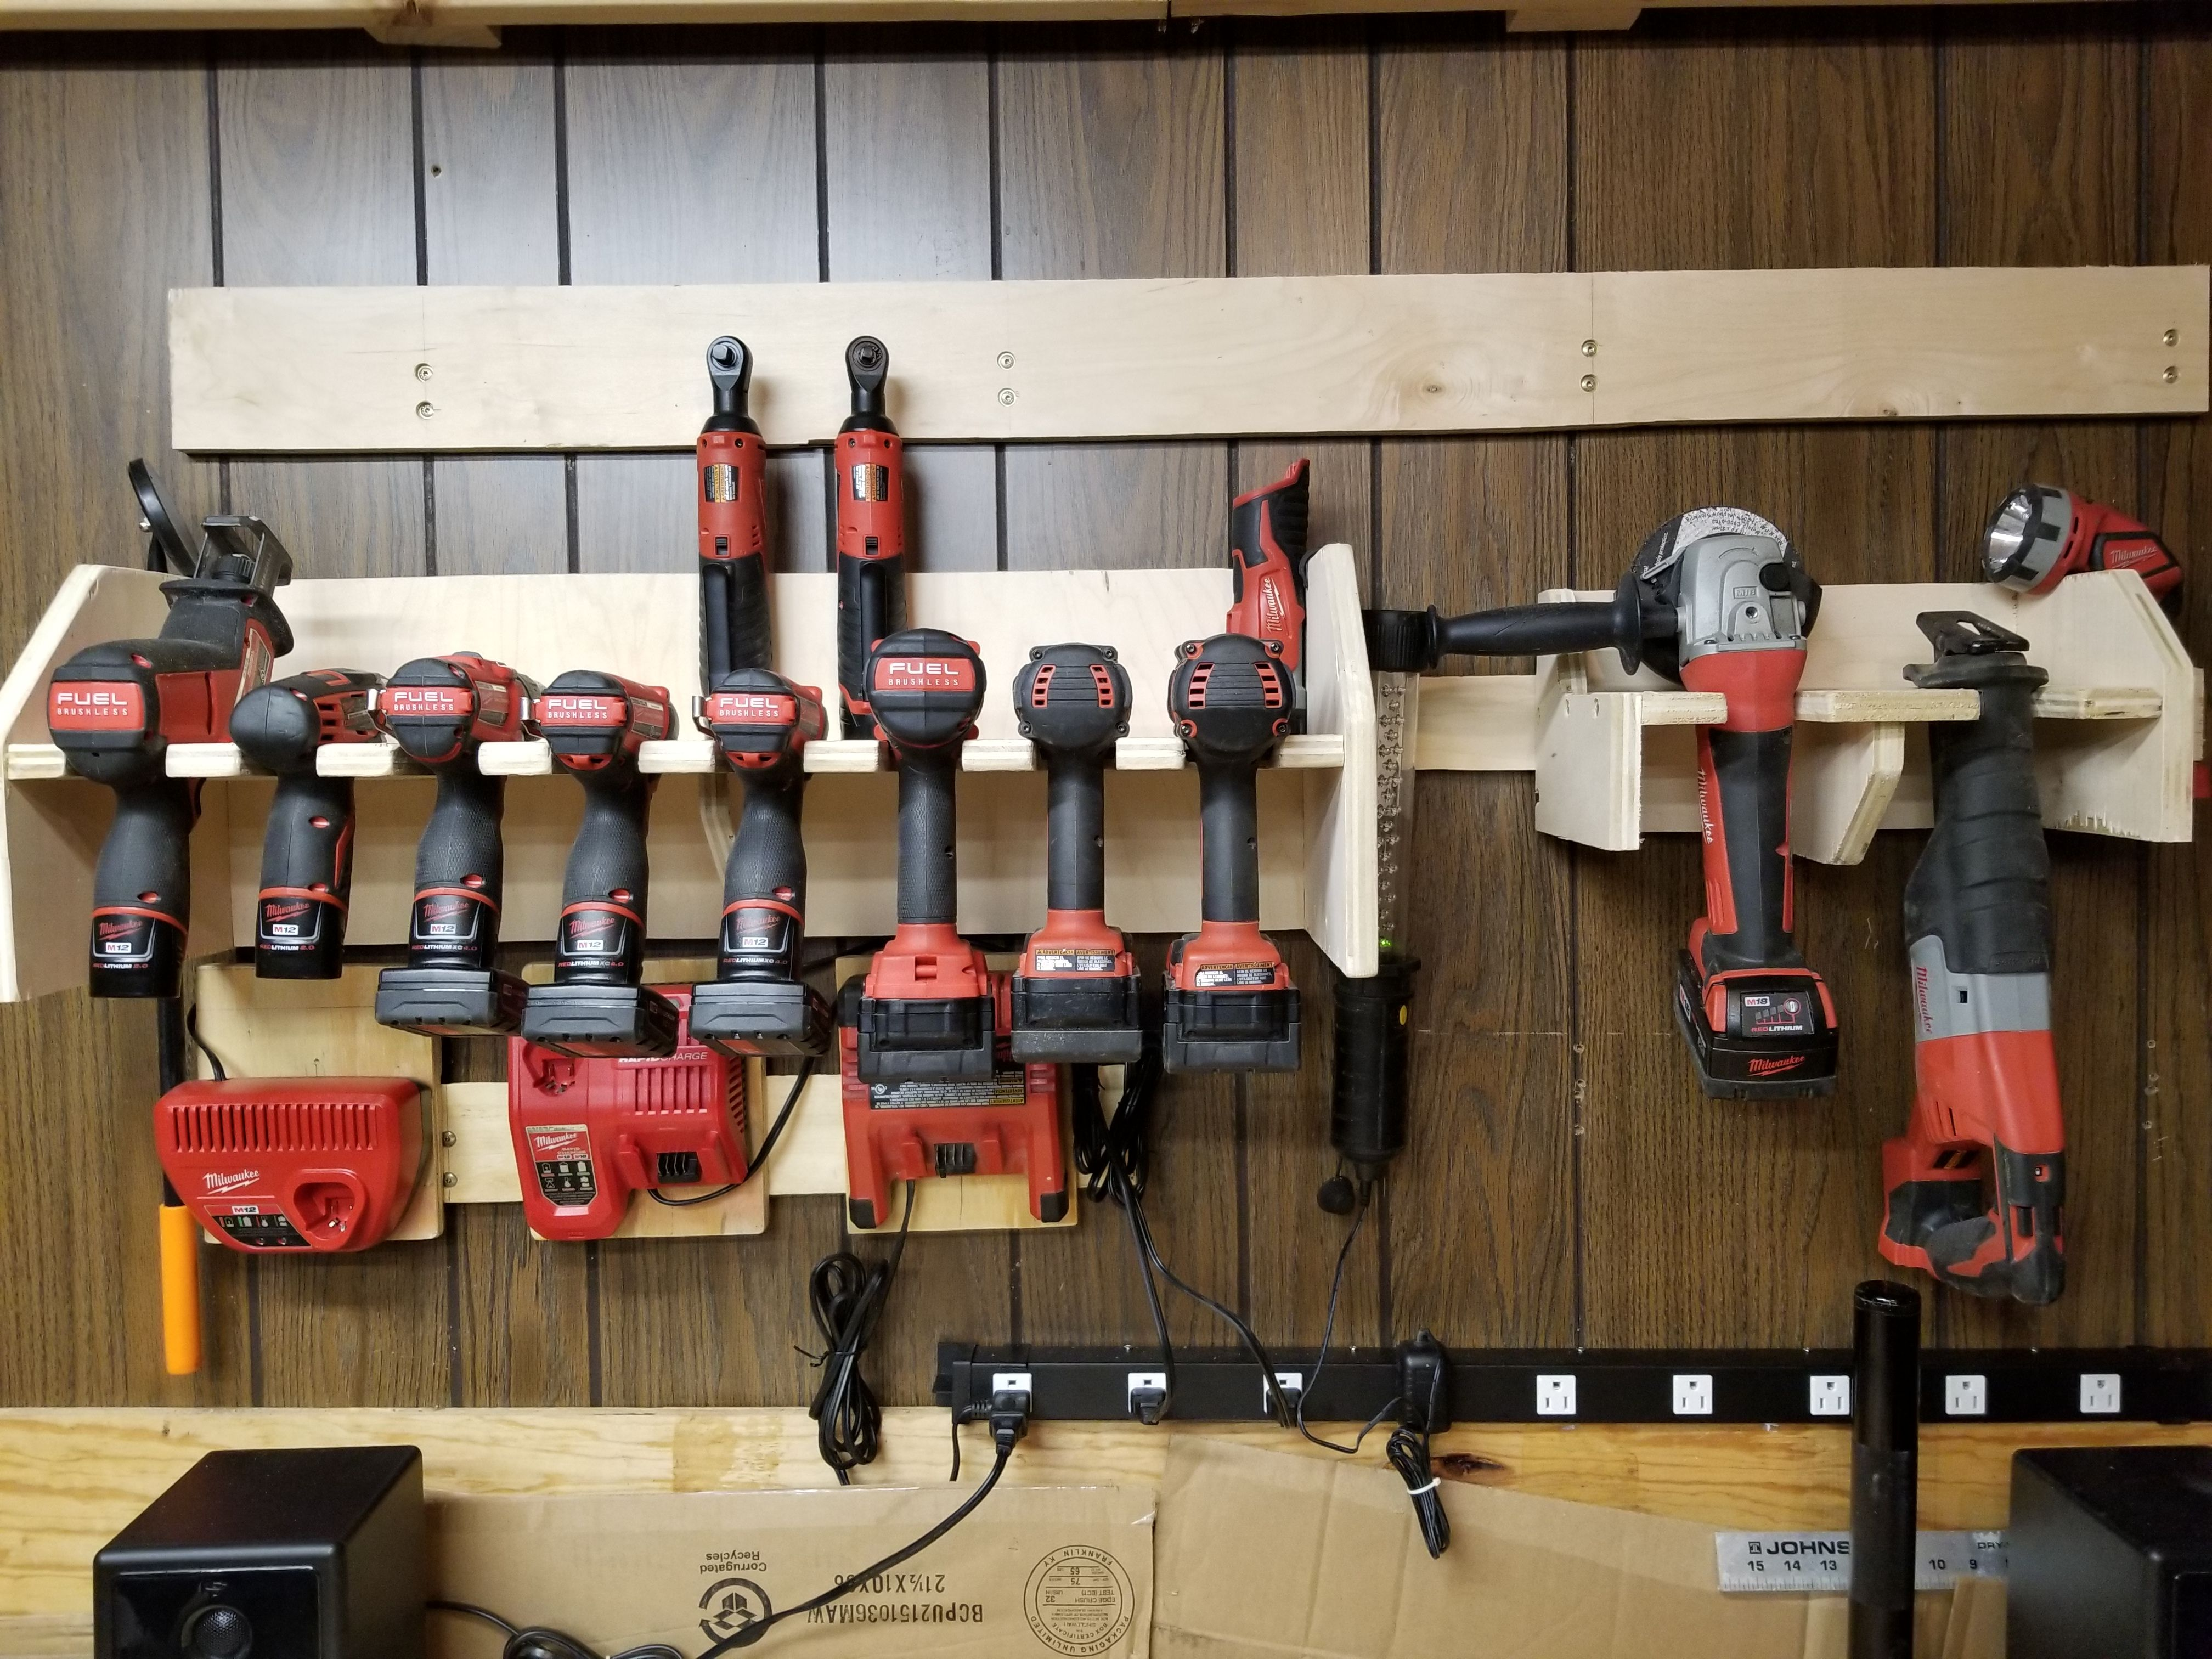 Diy cordless power tool storage charging station milwaukee m12 and diy cordless power tool storage charging station milwaukee m12 and m18 french cleats solutioingenieria Image collections